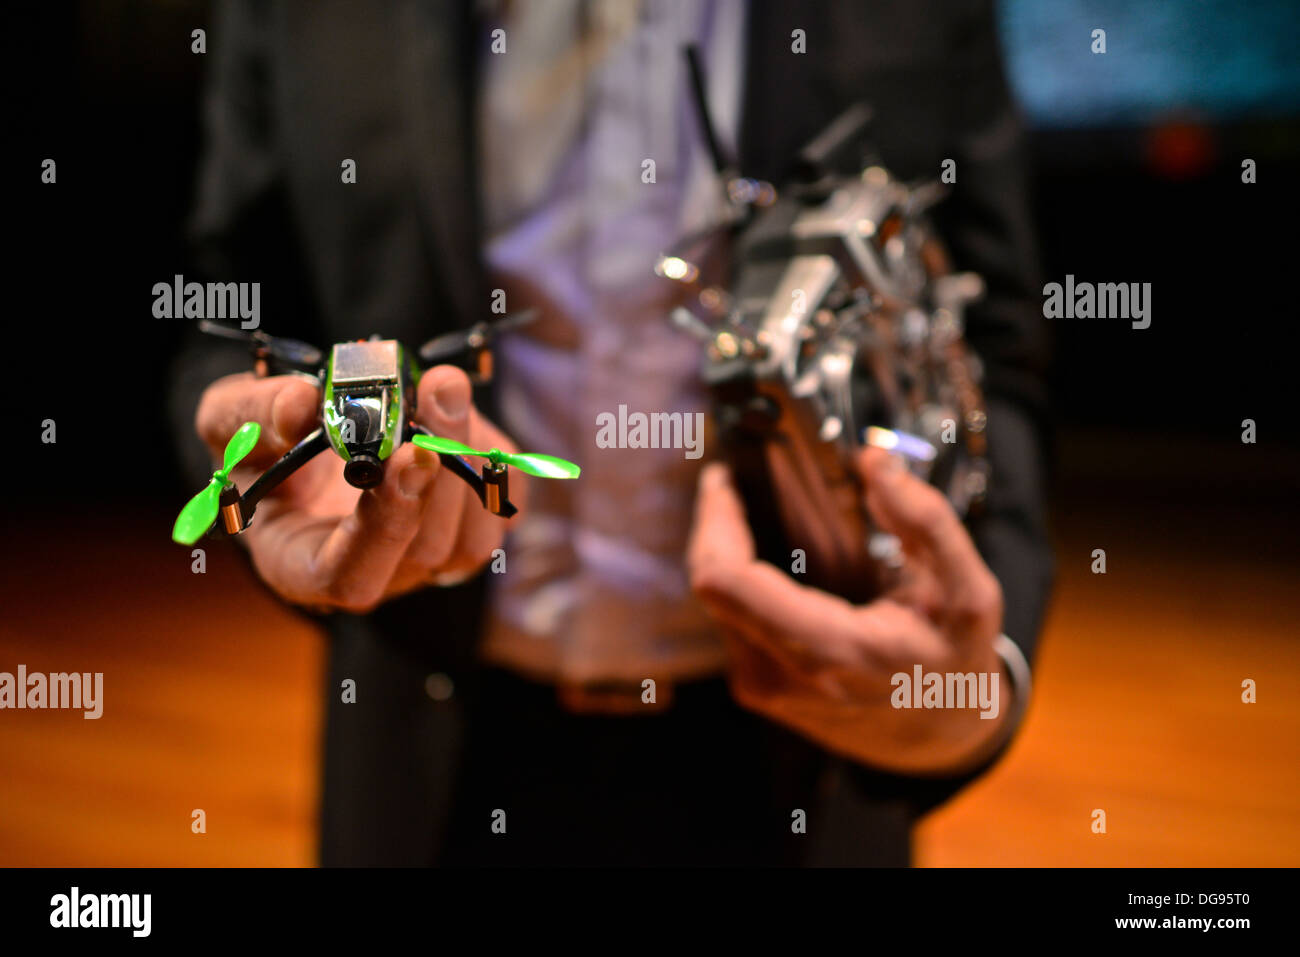 Eirik Solheim, from the Norweigan Broadcasting Corporation, flying a miniature quadcopter using First-person view (FPV) - Stock Image